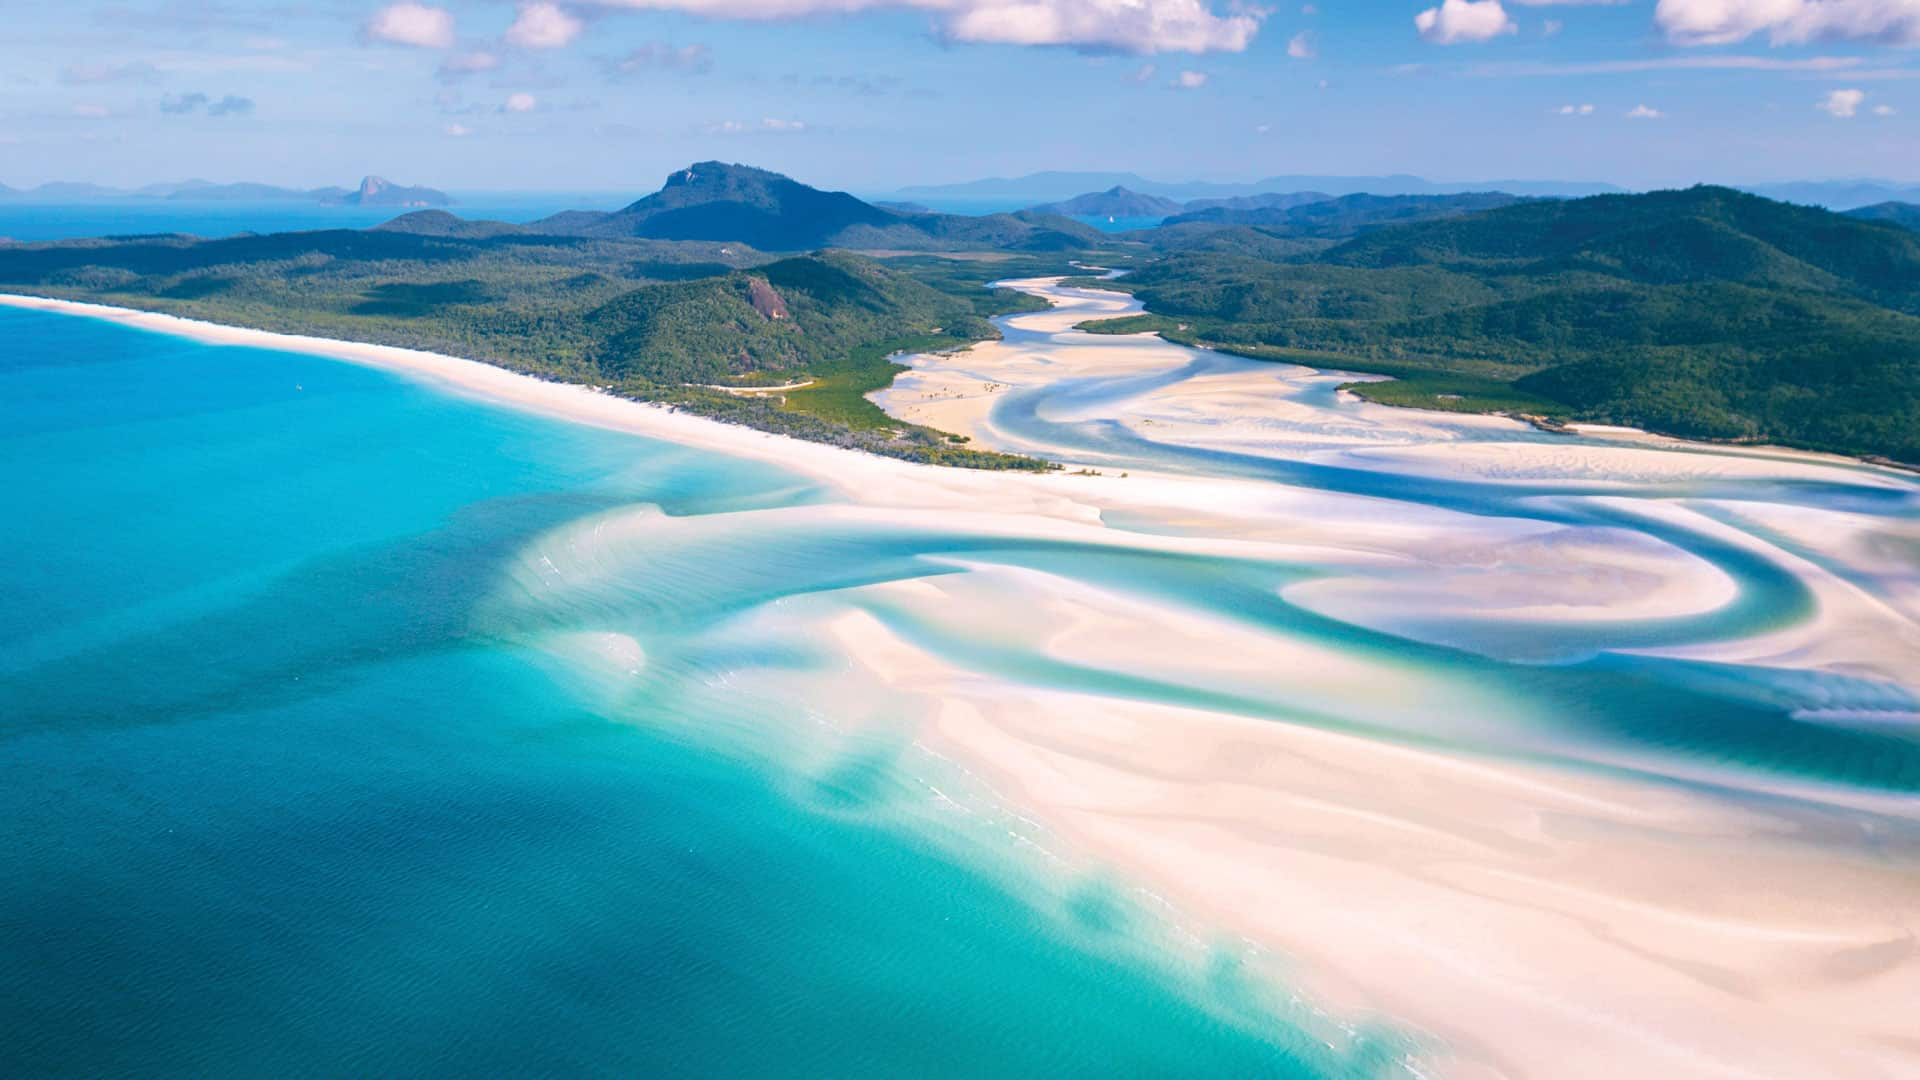 Explore Whitsunday island anchorages